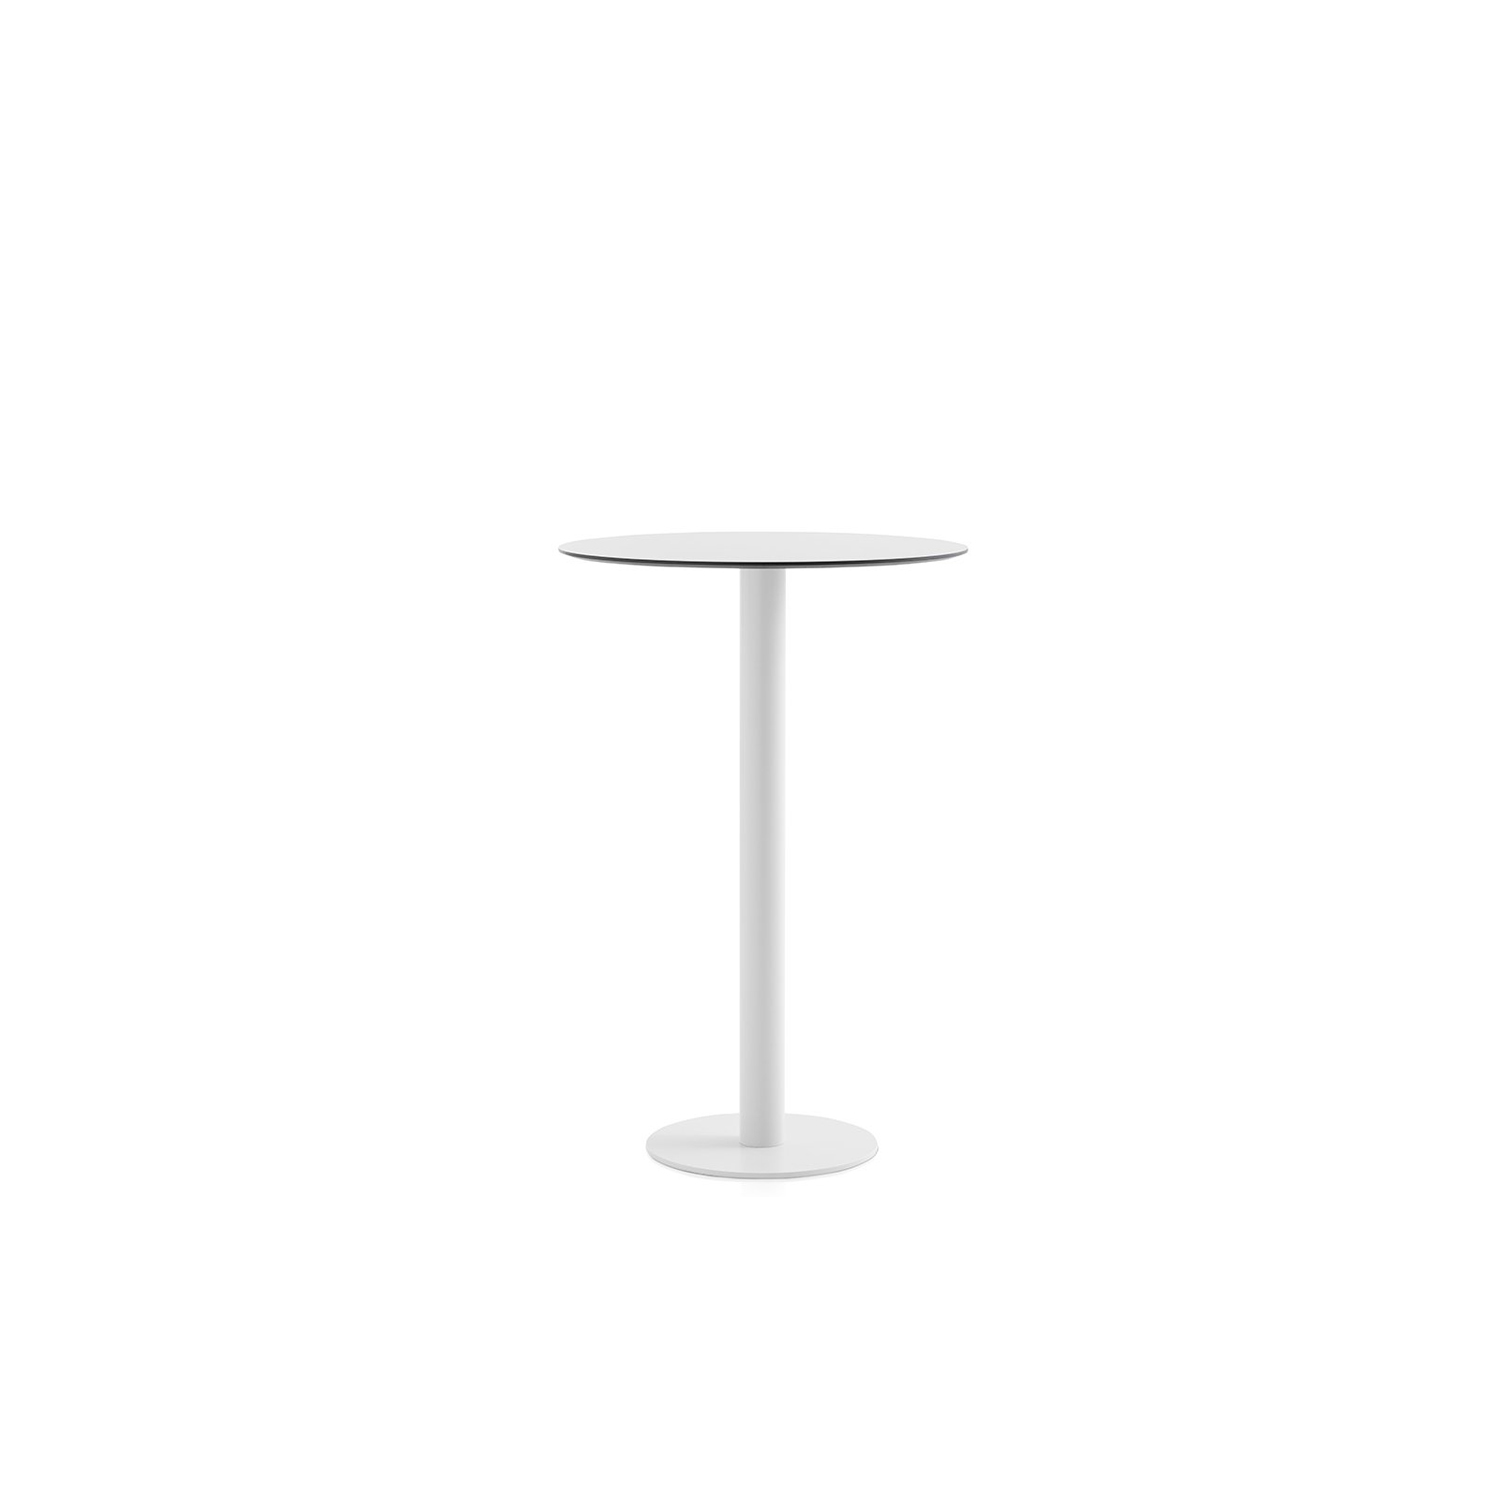 Mona High Table - <p>This is our high table from the Mona series, a design with a round tabletop and a single-leg structure specially designed for a corner or a bar-style environment. It measures 105 cm in height and it is available only in 70 cm diameter. Accompanied by high stools, this table allows you to create a relaxed outdoor space where you can have a drink or a snack, as well as a casual office area inside the house.</p>